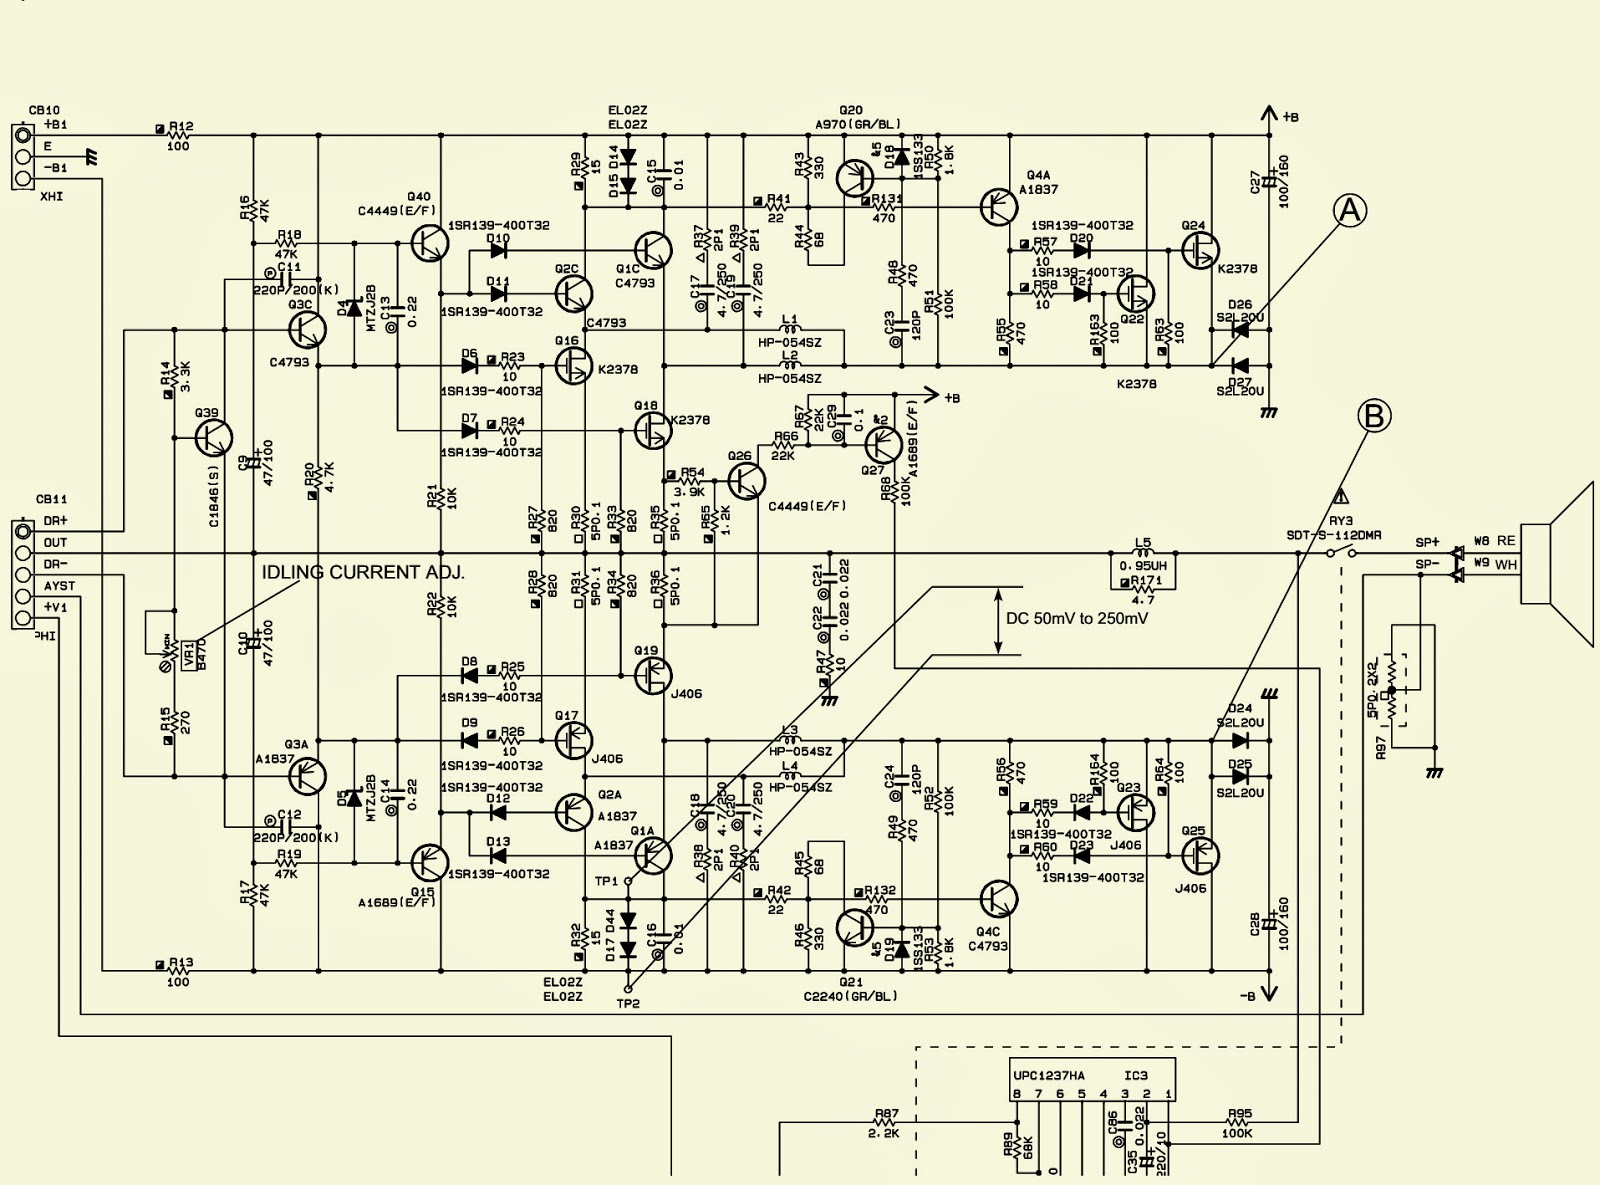 Wiring Diagram For Amp And Sub 2003 Honda Vtx 1300 Headlight Electro Help Yamaha Yst Sw800 Subwoofer